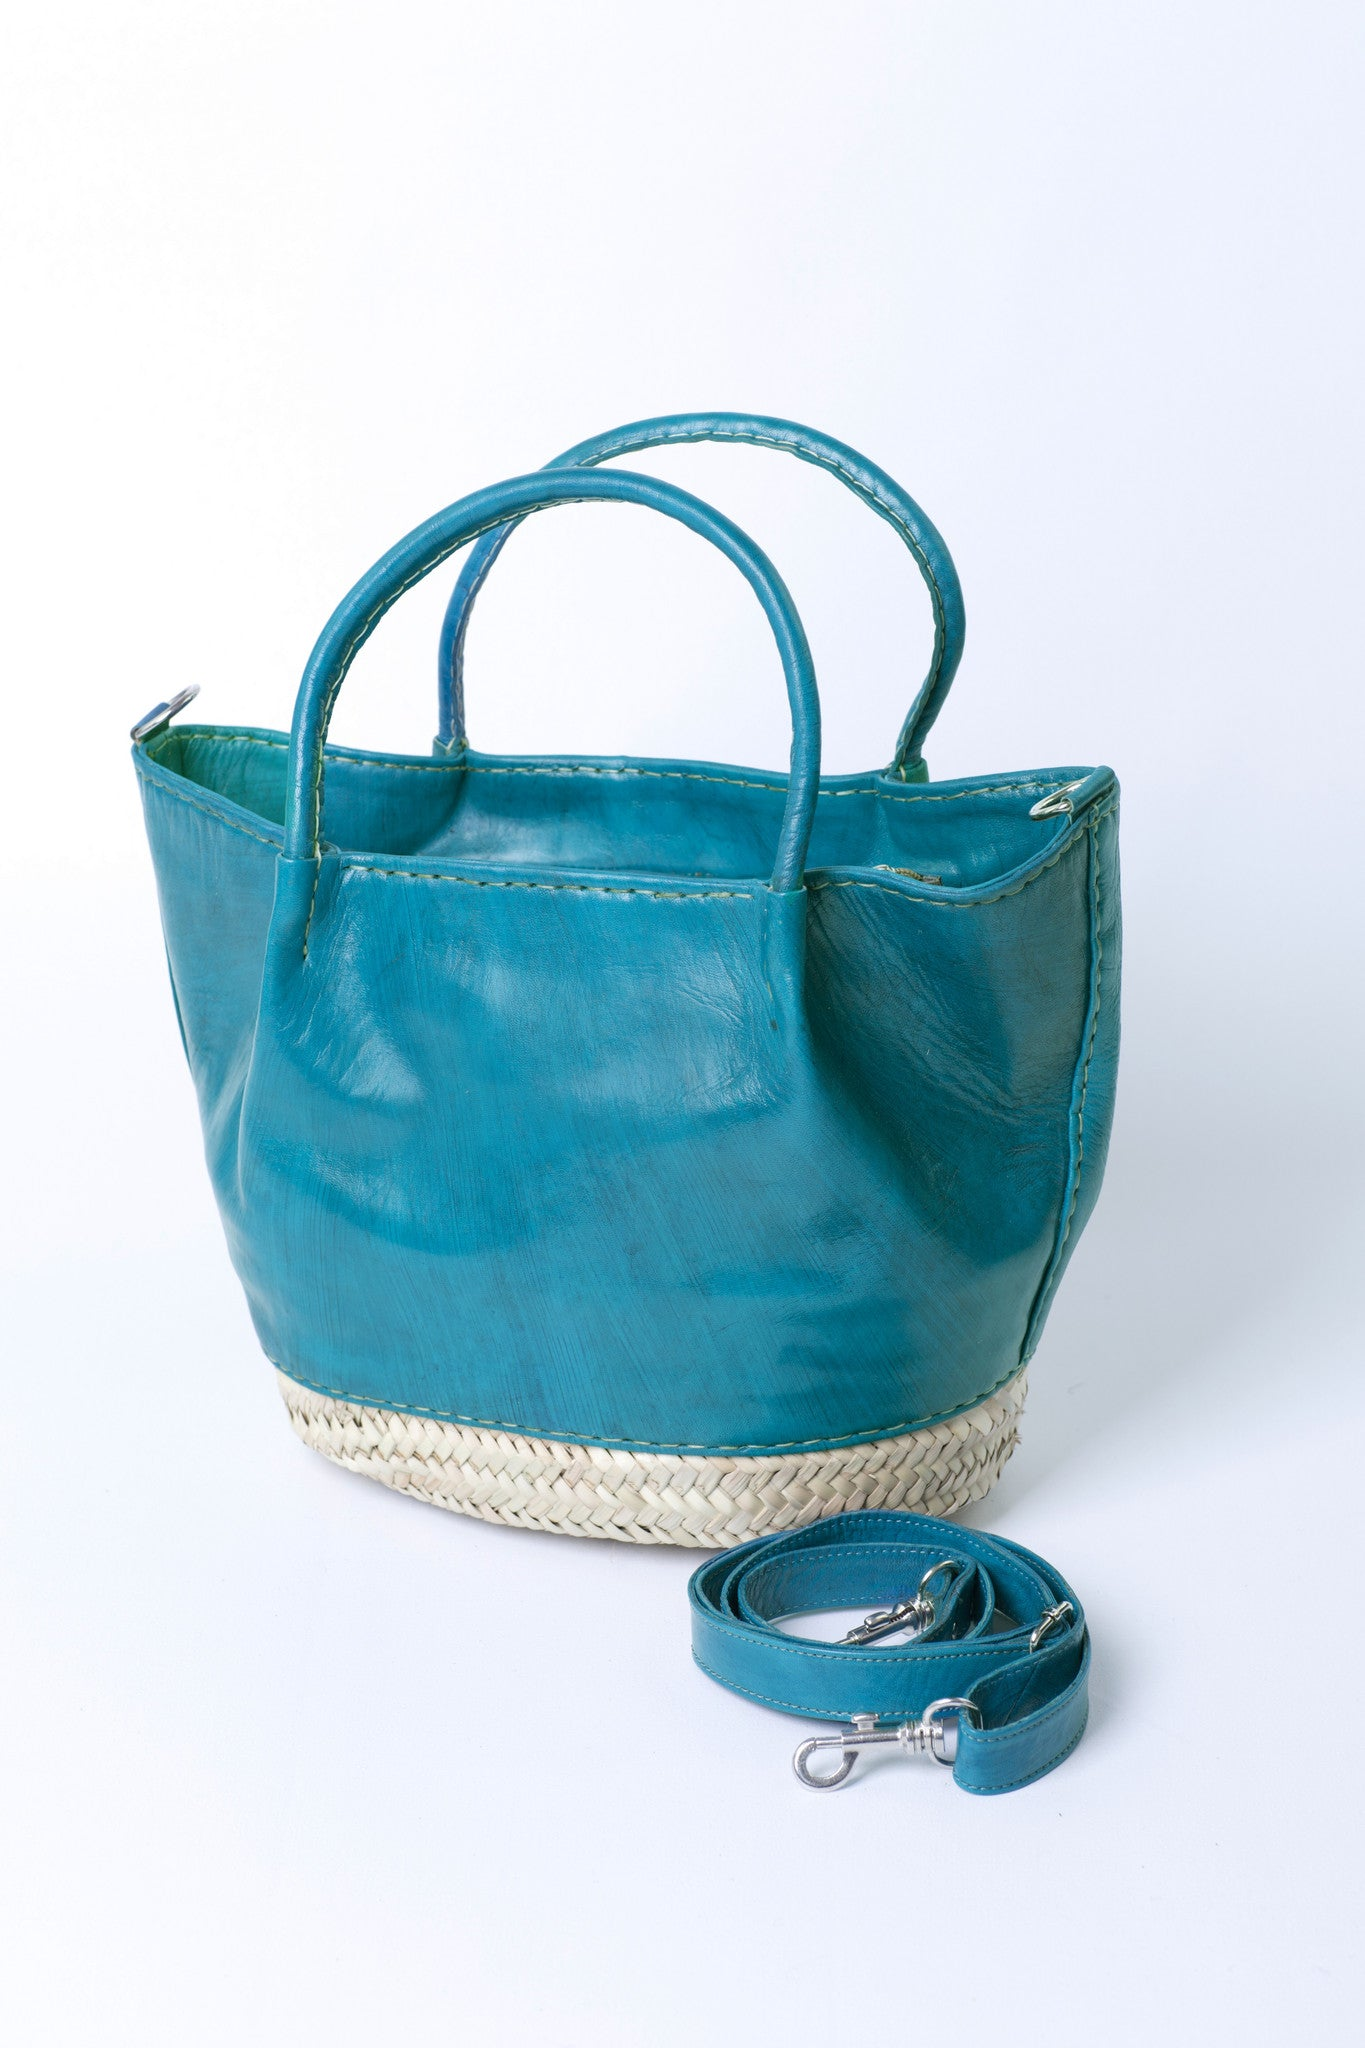 Marrakech Chic Handbag